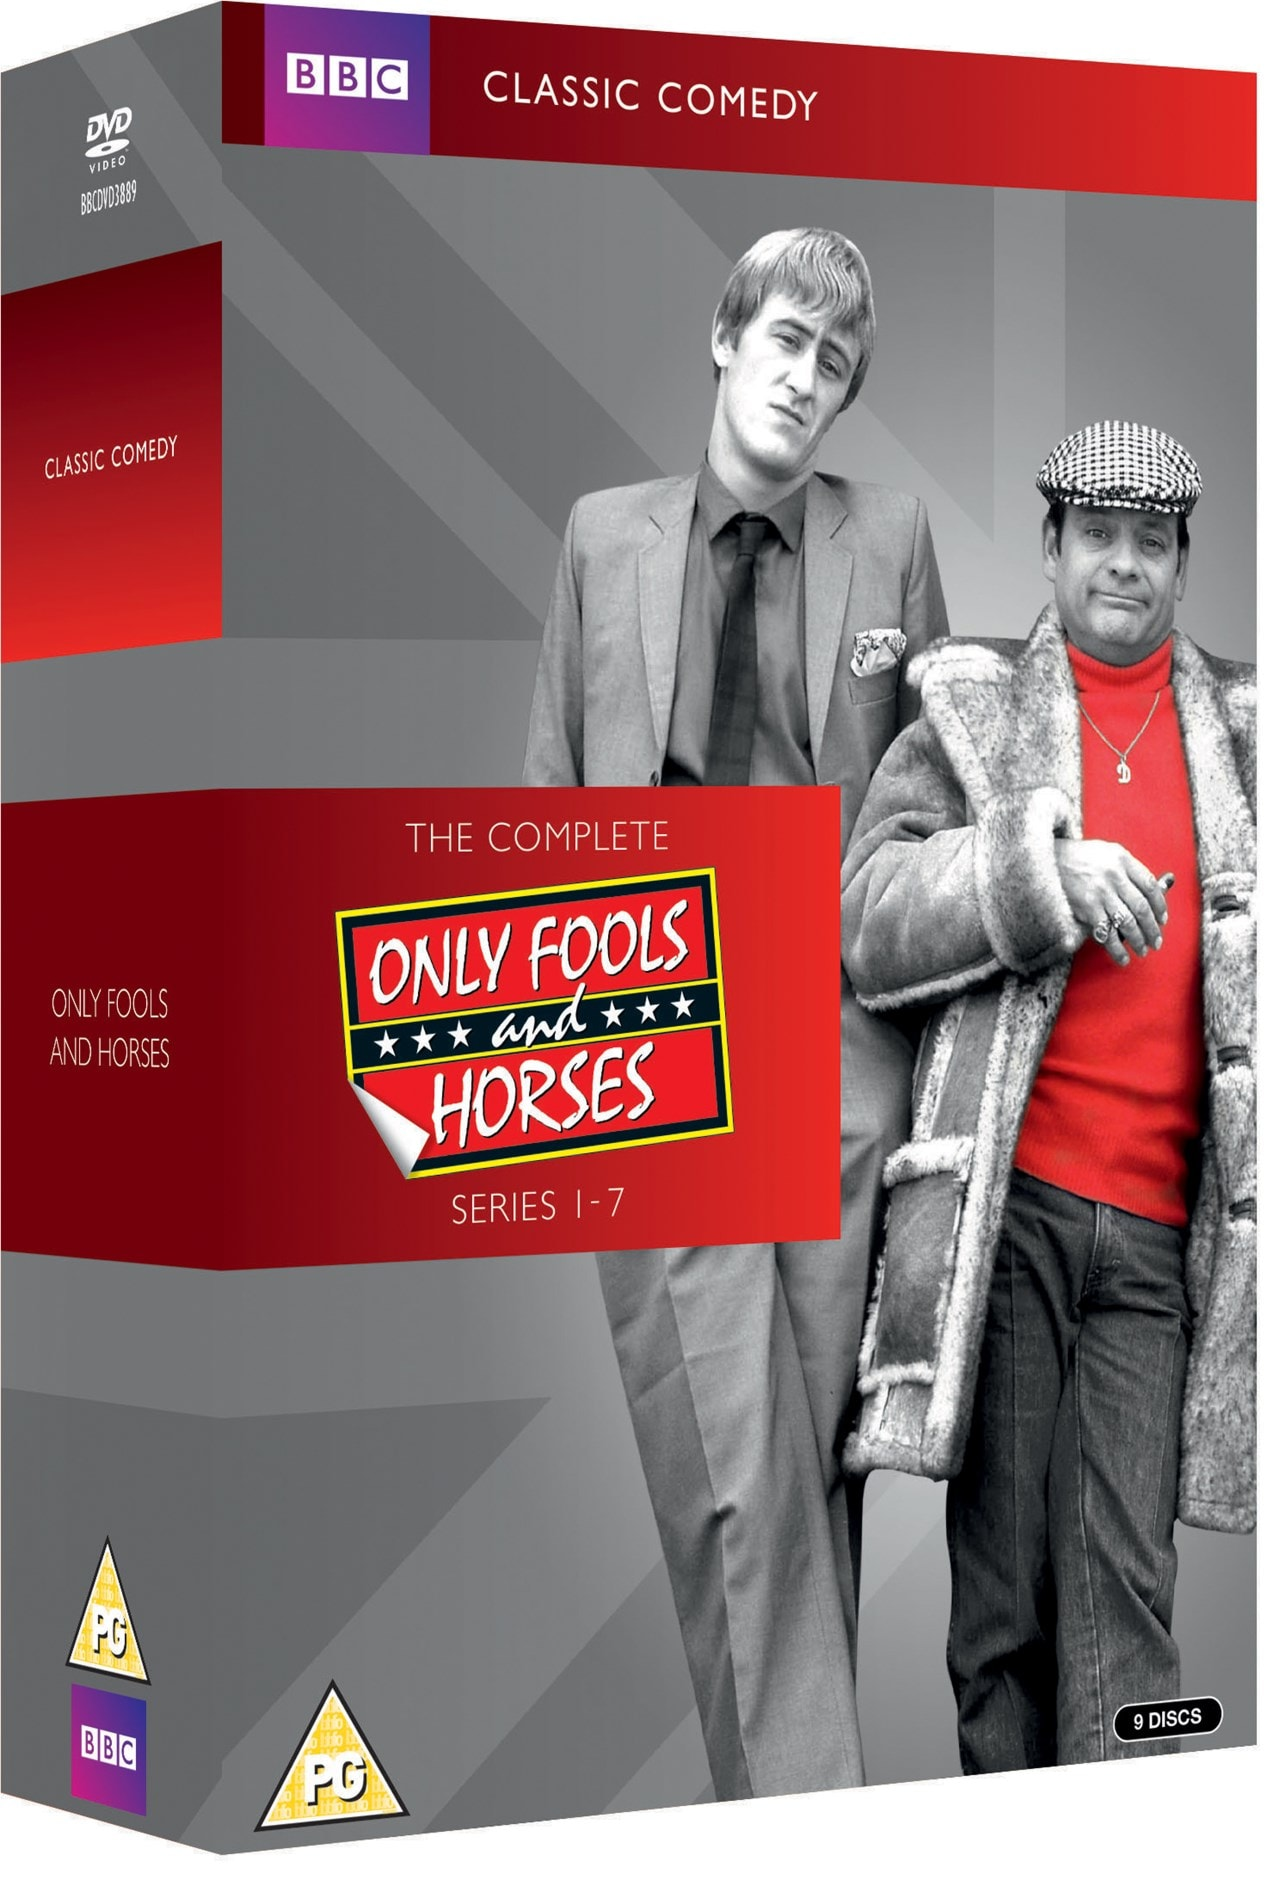 Only Fools and Horses: Complete Series 1-7 (hmv Exclusive) - 2